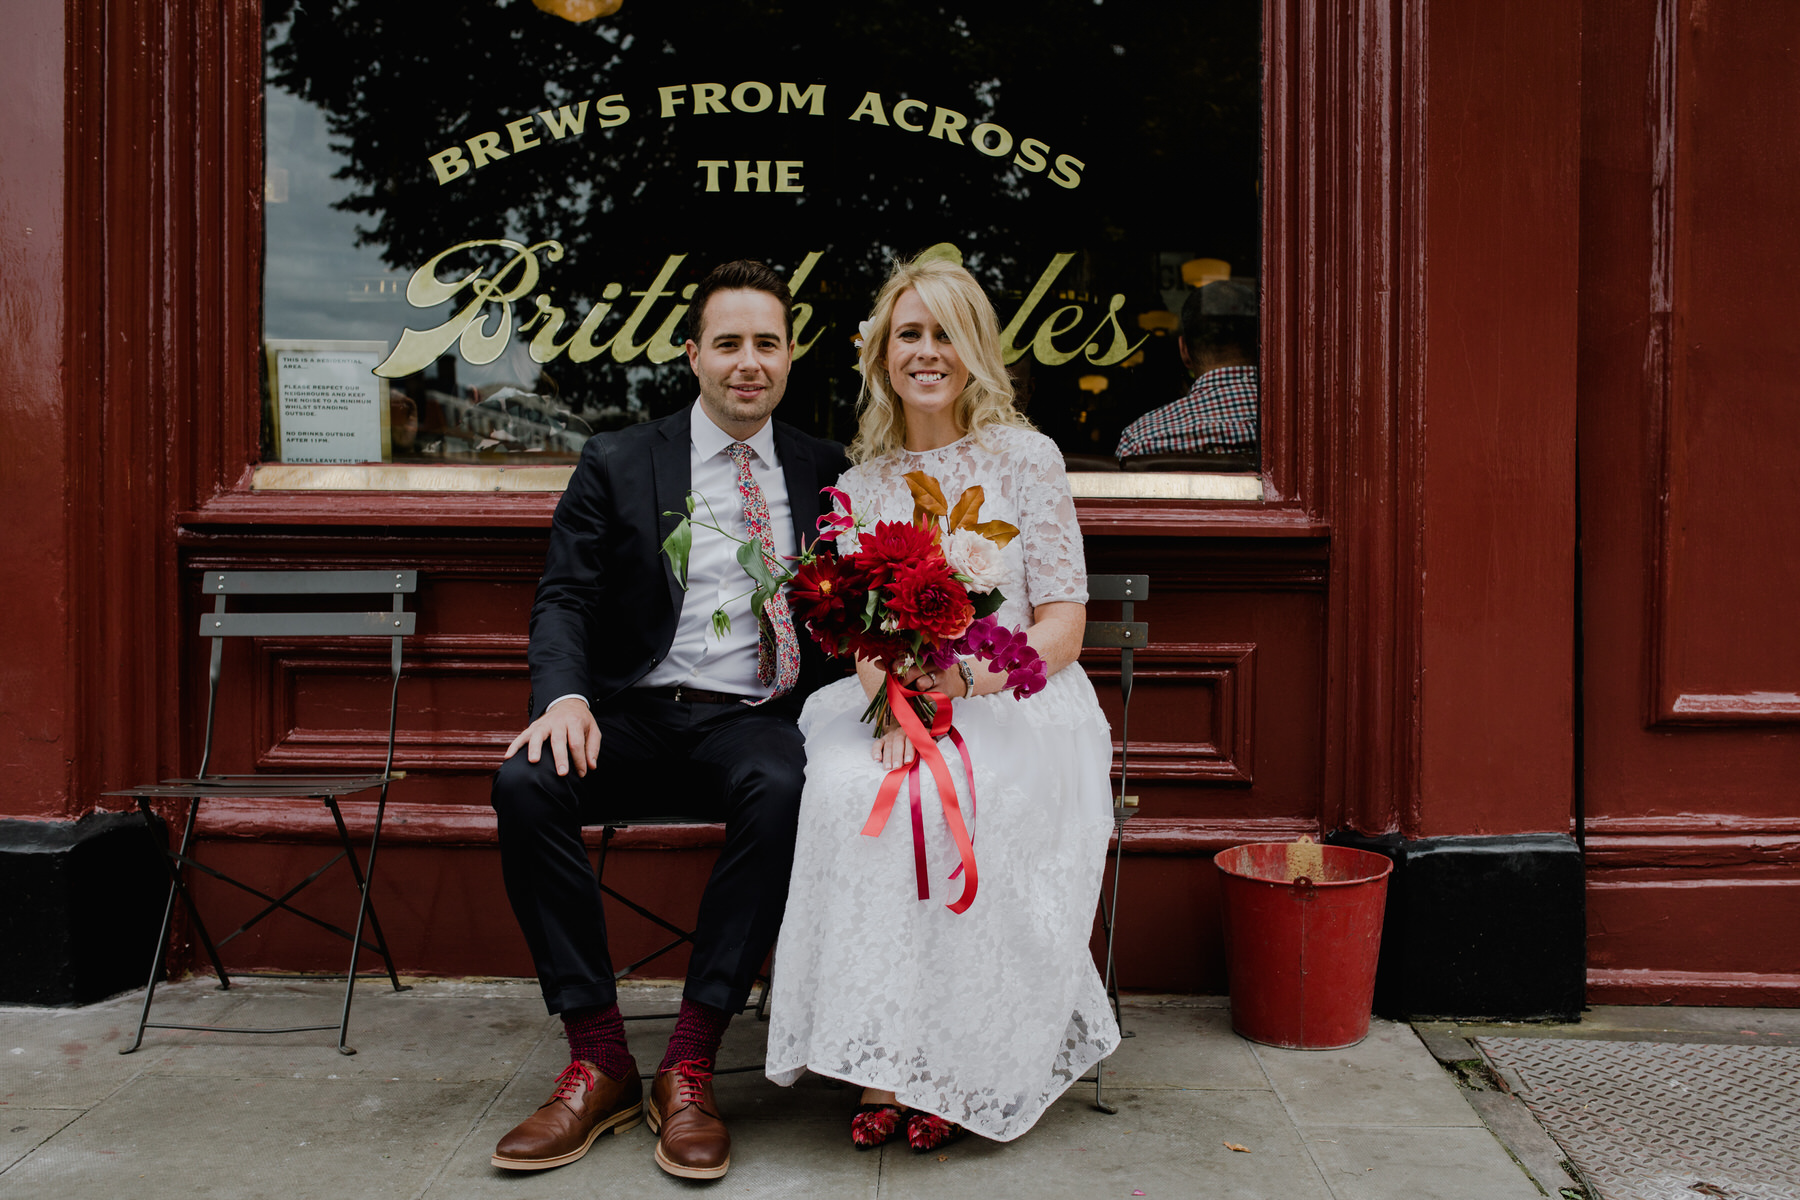 London wedding portrait outside pub.jpg